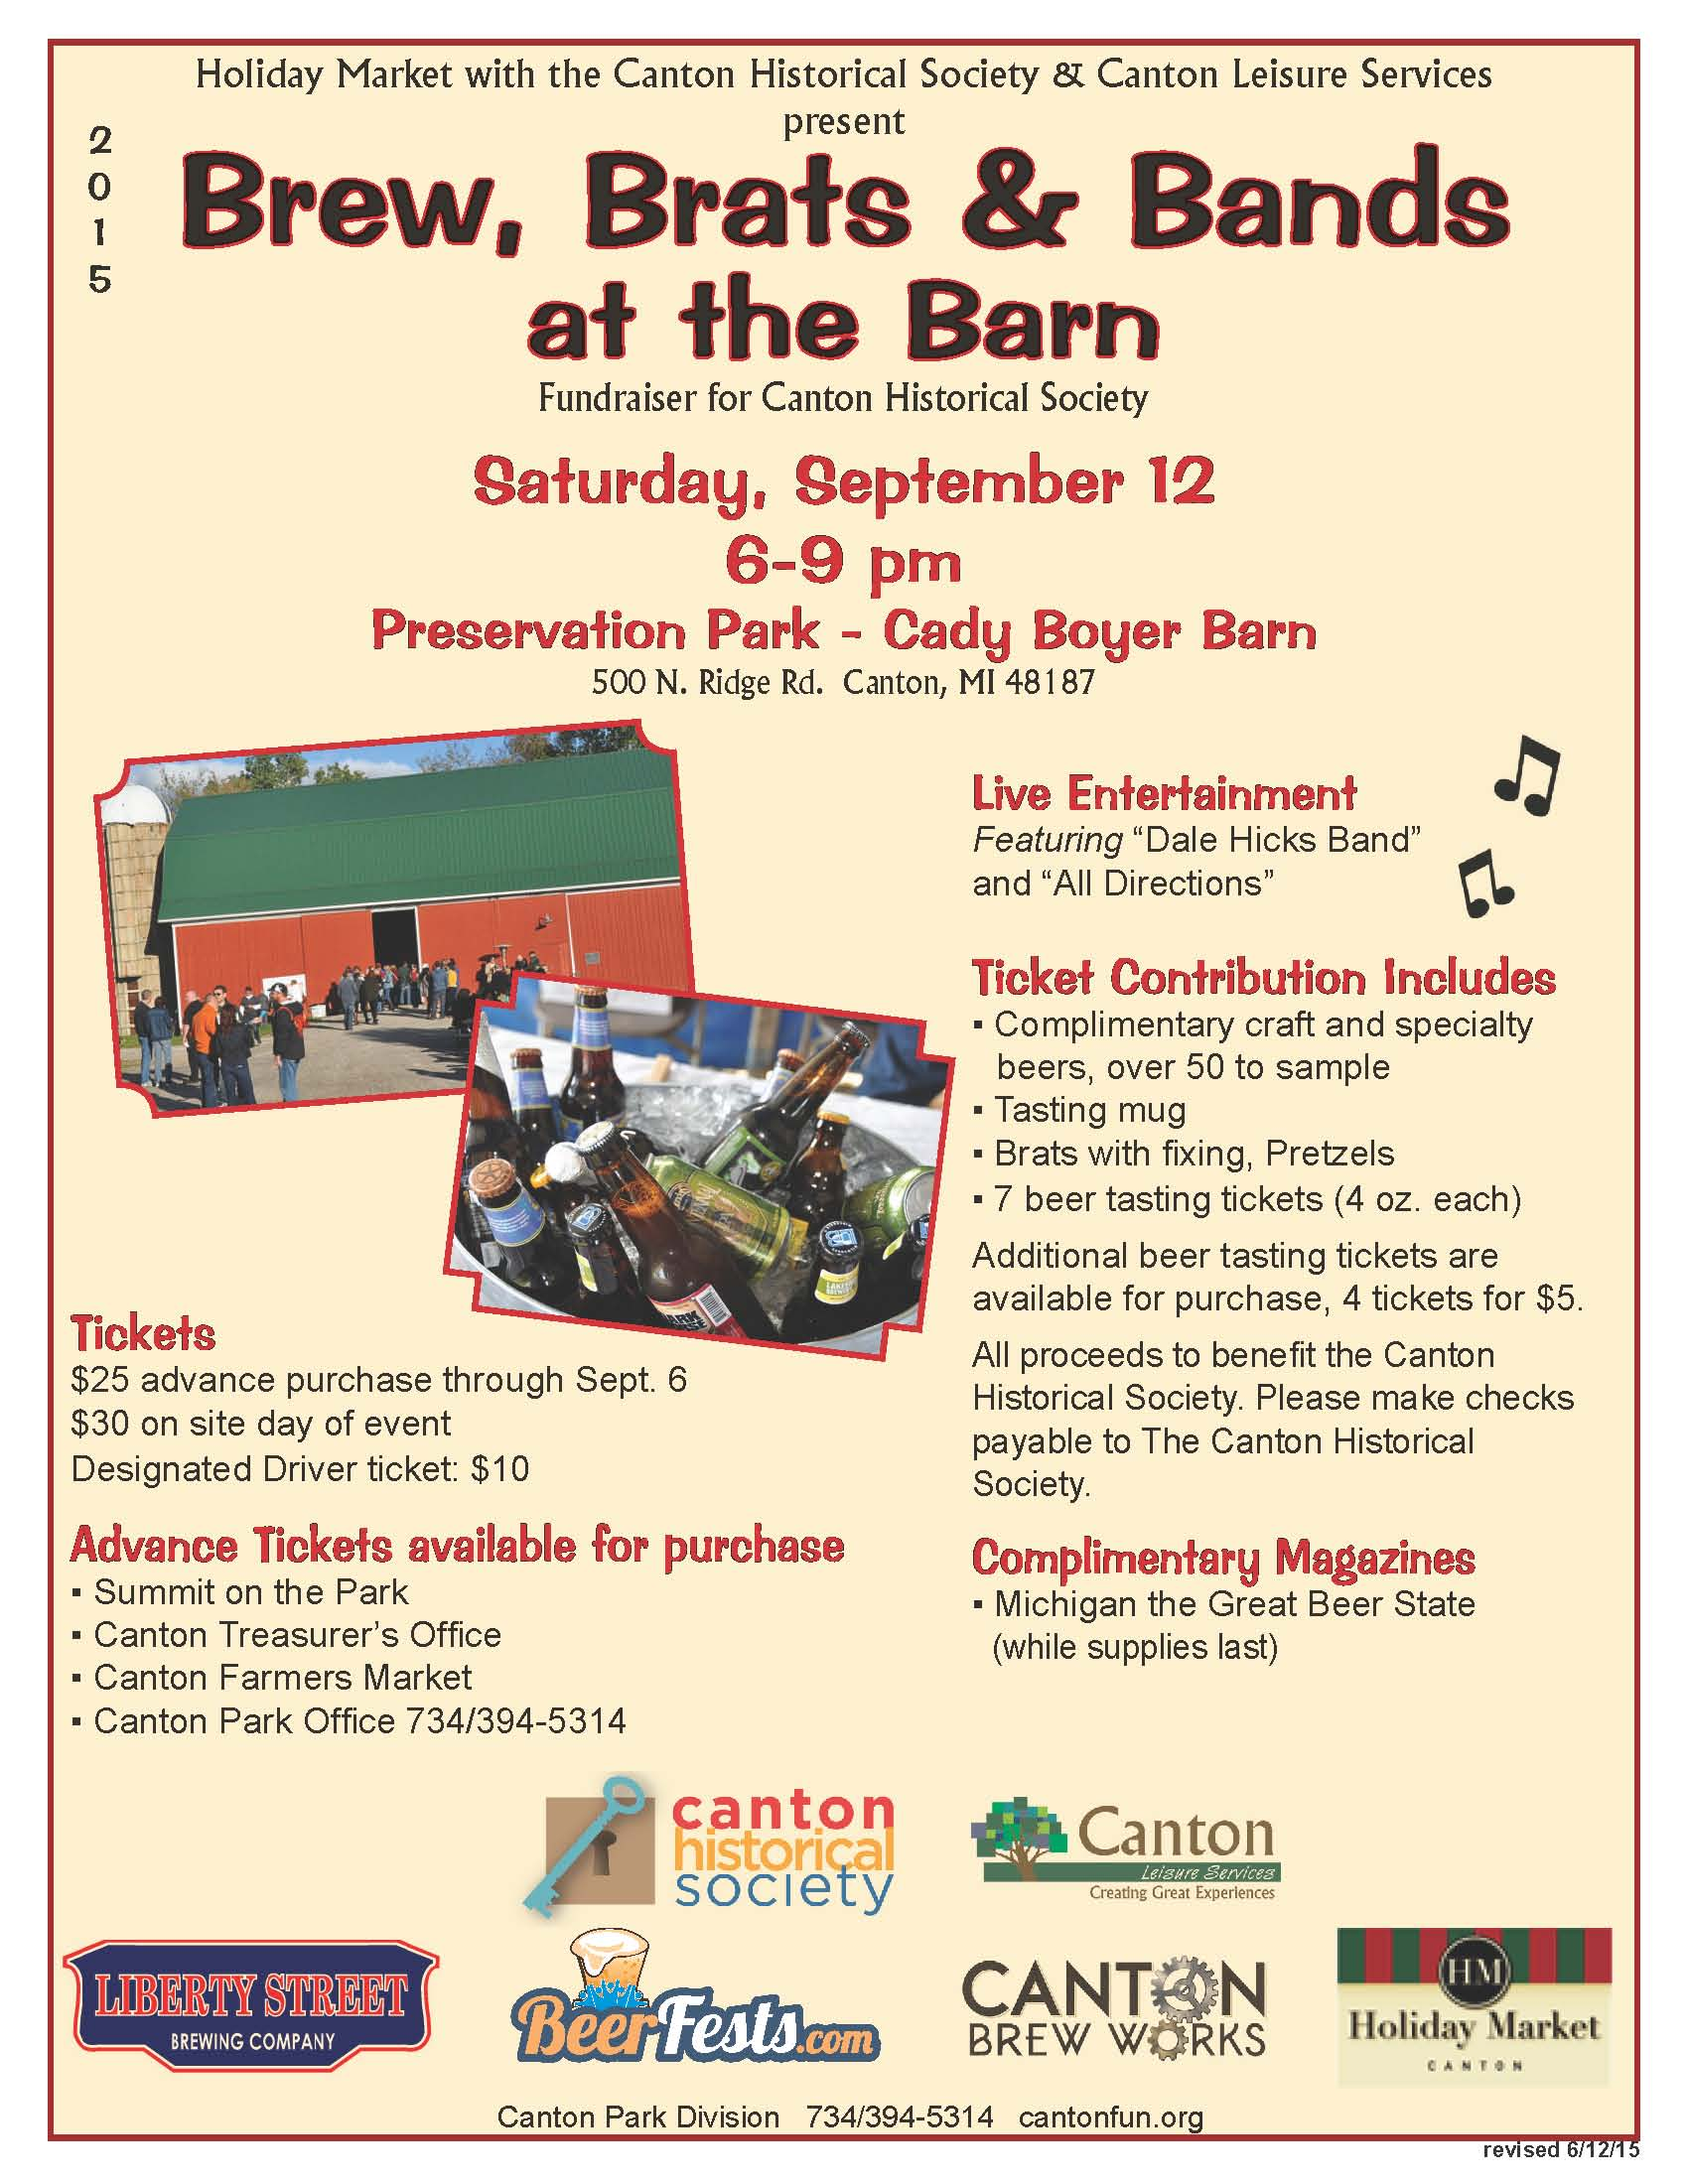 Brew Brats and Bands at the Barn